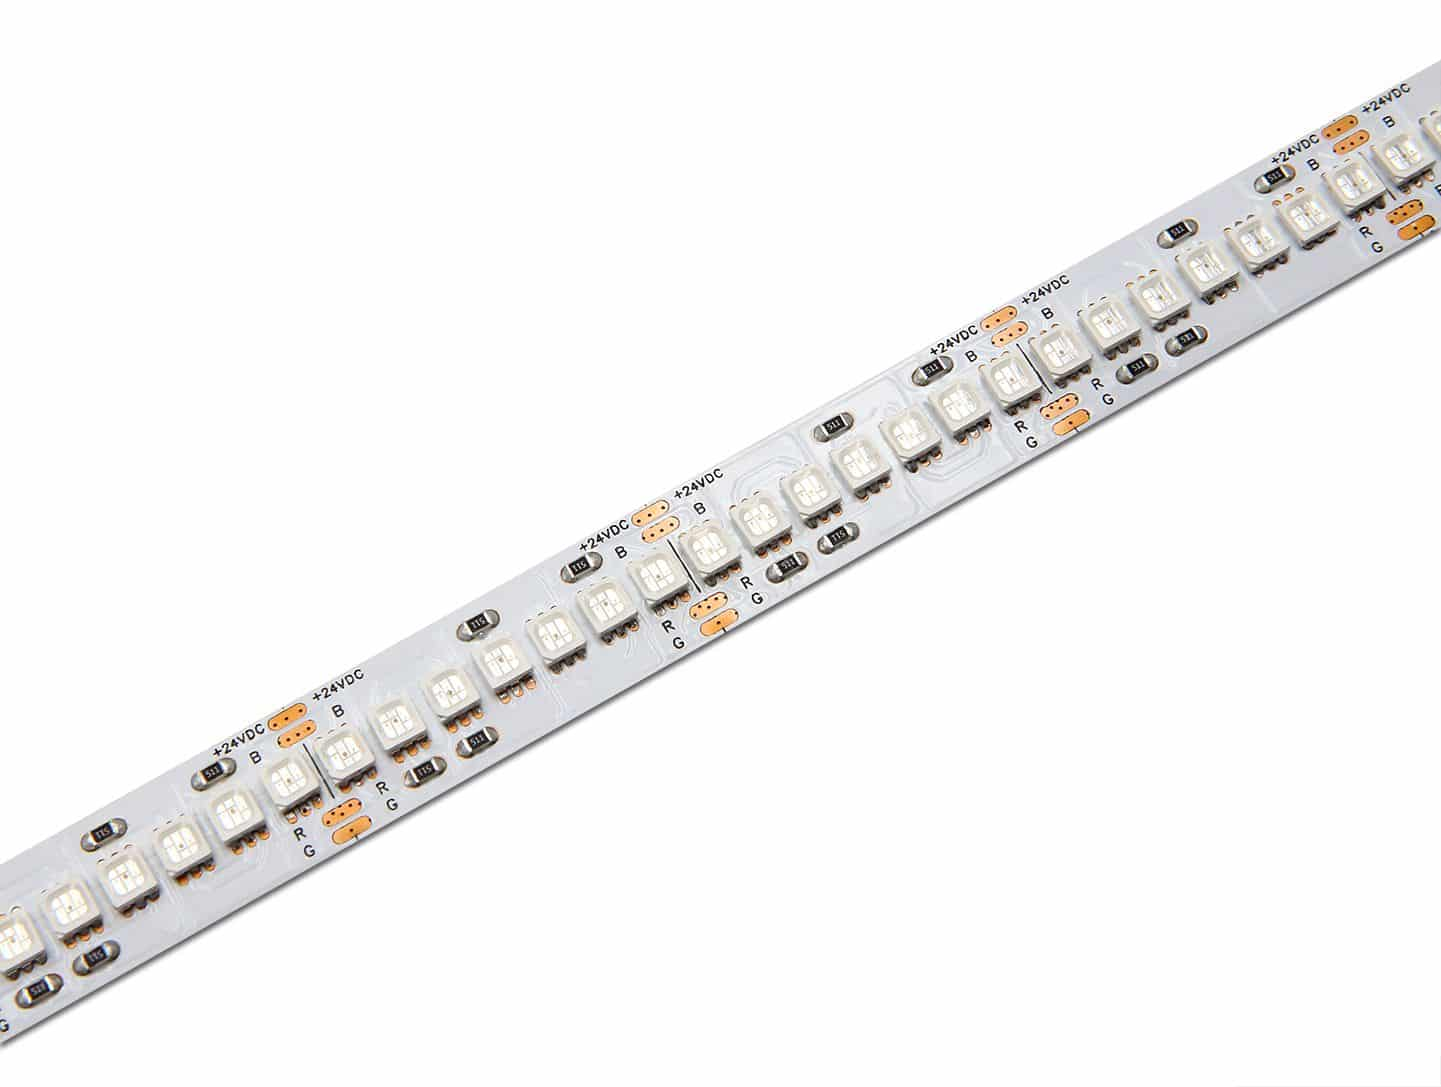 RGB LED strip light SMD 3535 chip with 224 LEDs/m